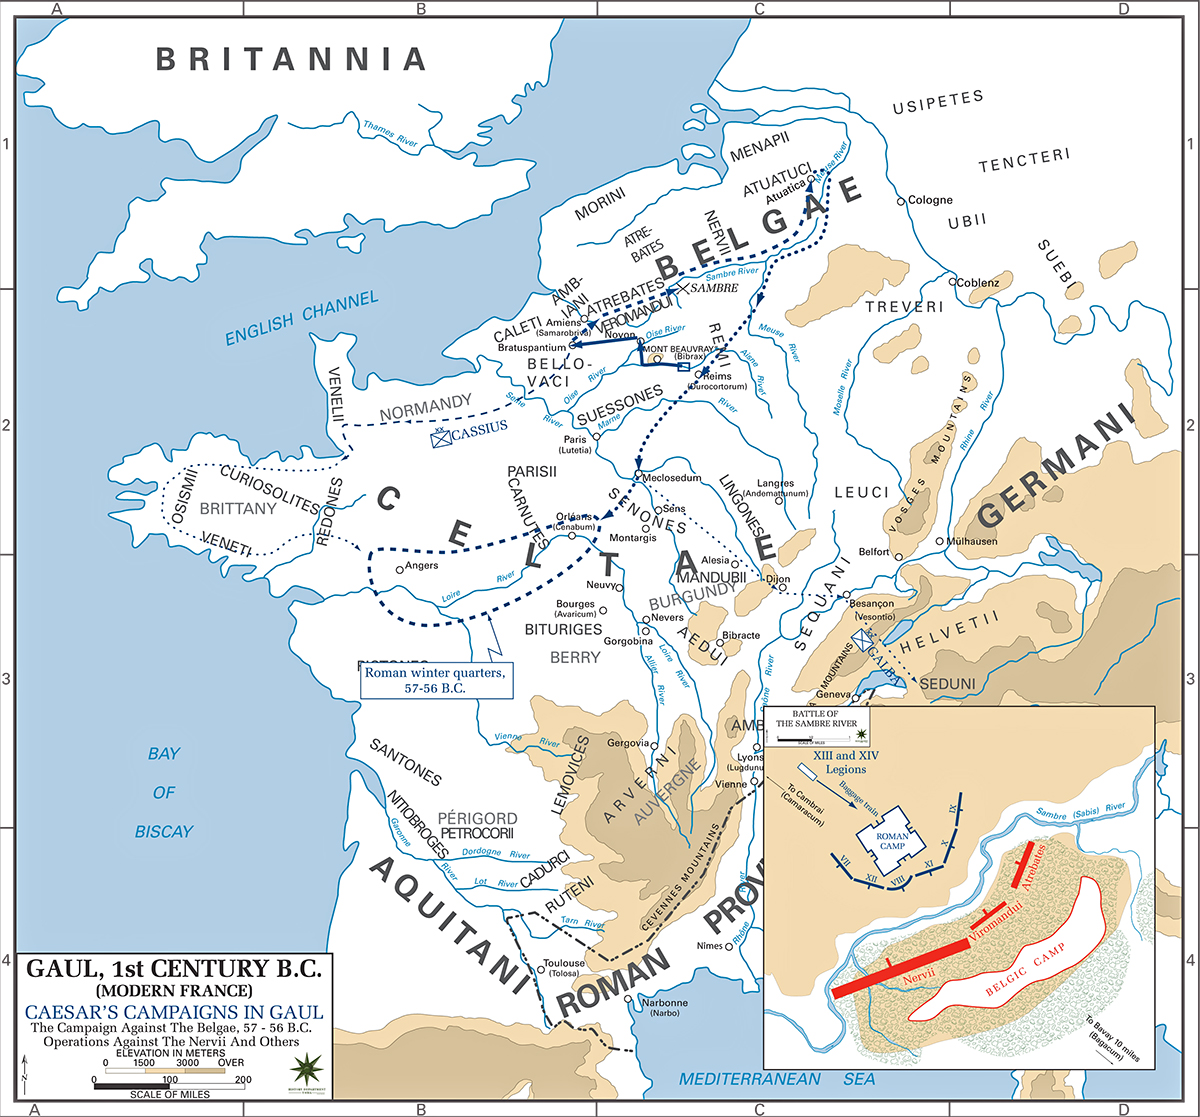 Map of Caesar's Campaign Against the Belgae 57 / 56 BC - Operations Against the Nervii and Others